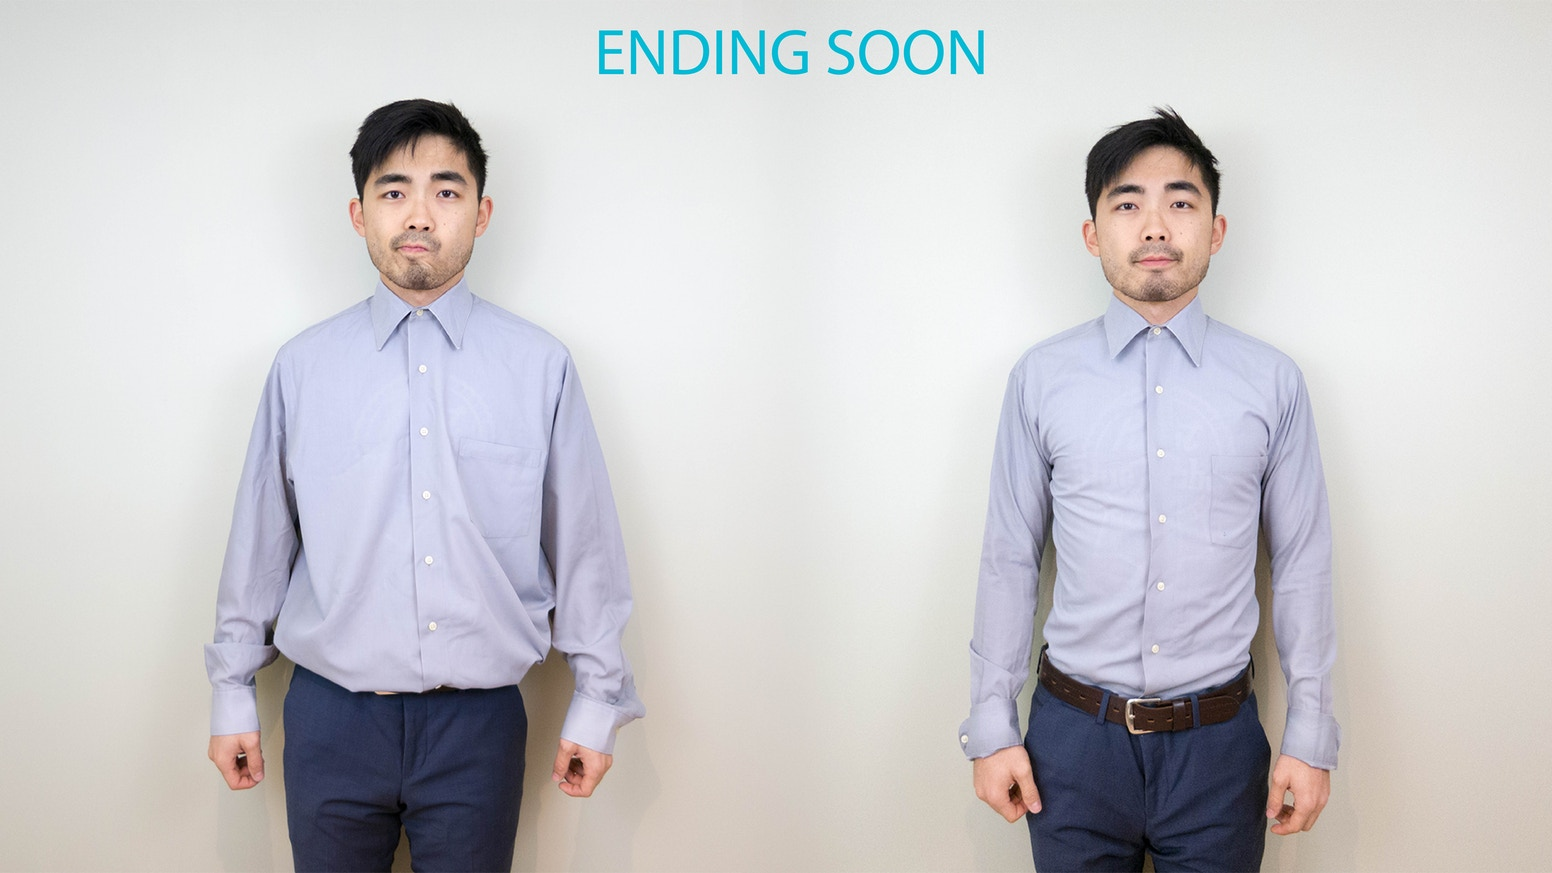 Weighing less than an ounce, the ZipSeam lets you tailor your baggy, ill-fitting shirts into a fitted masterpiece in minutes